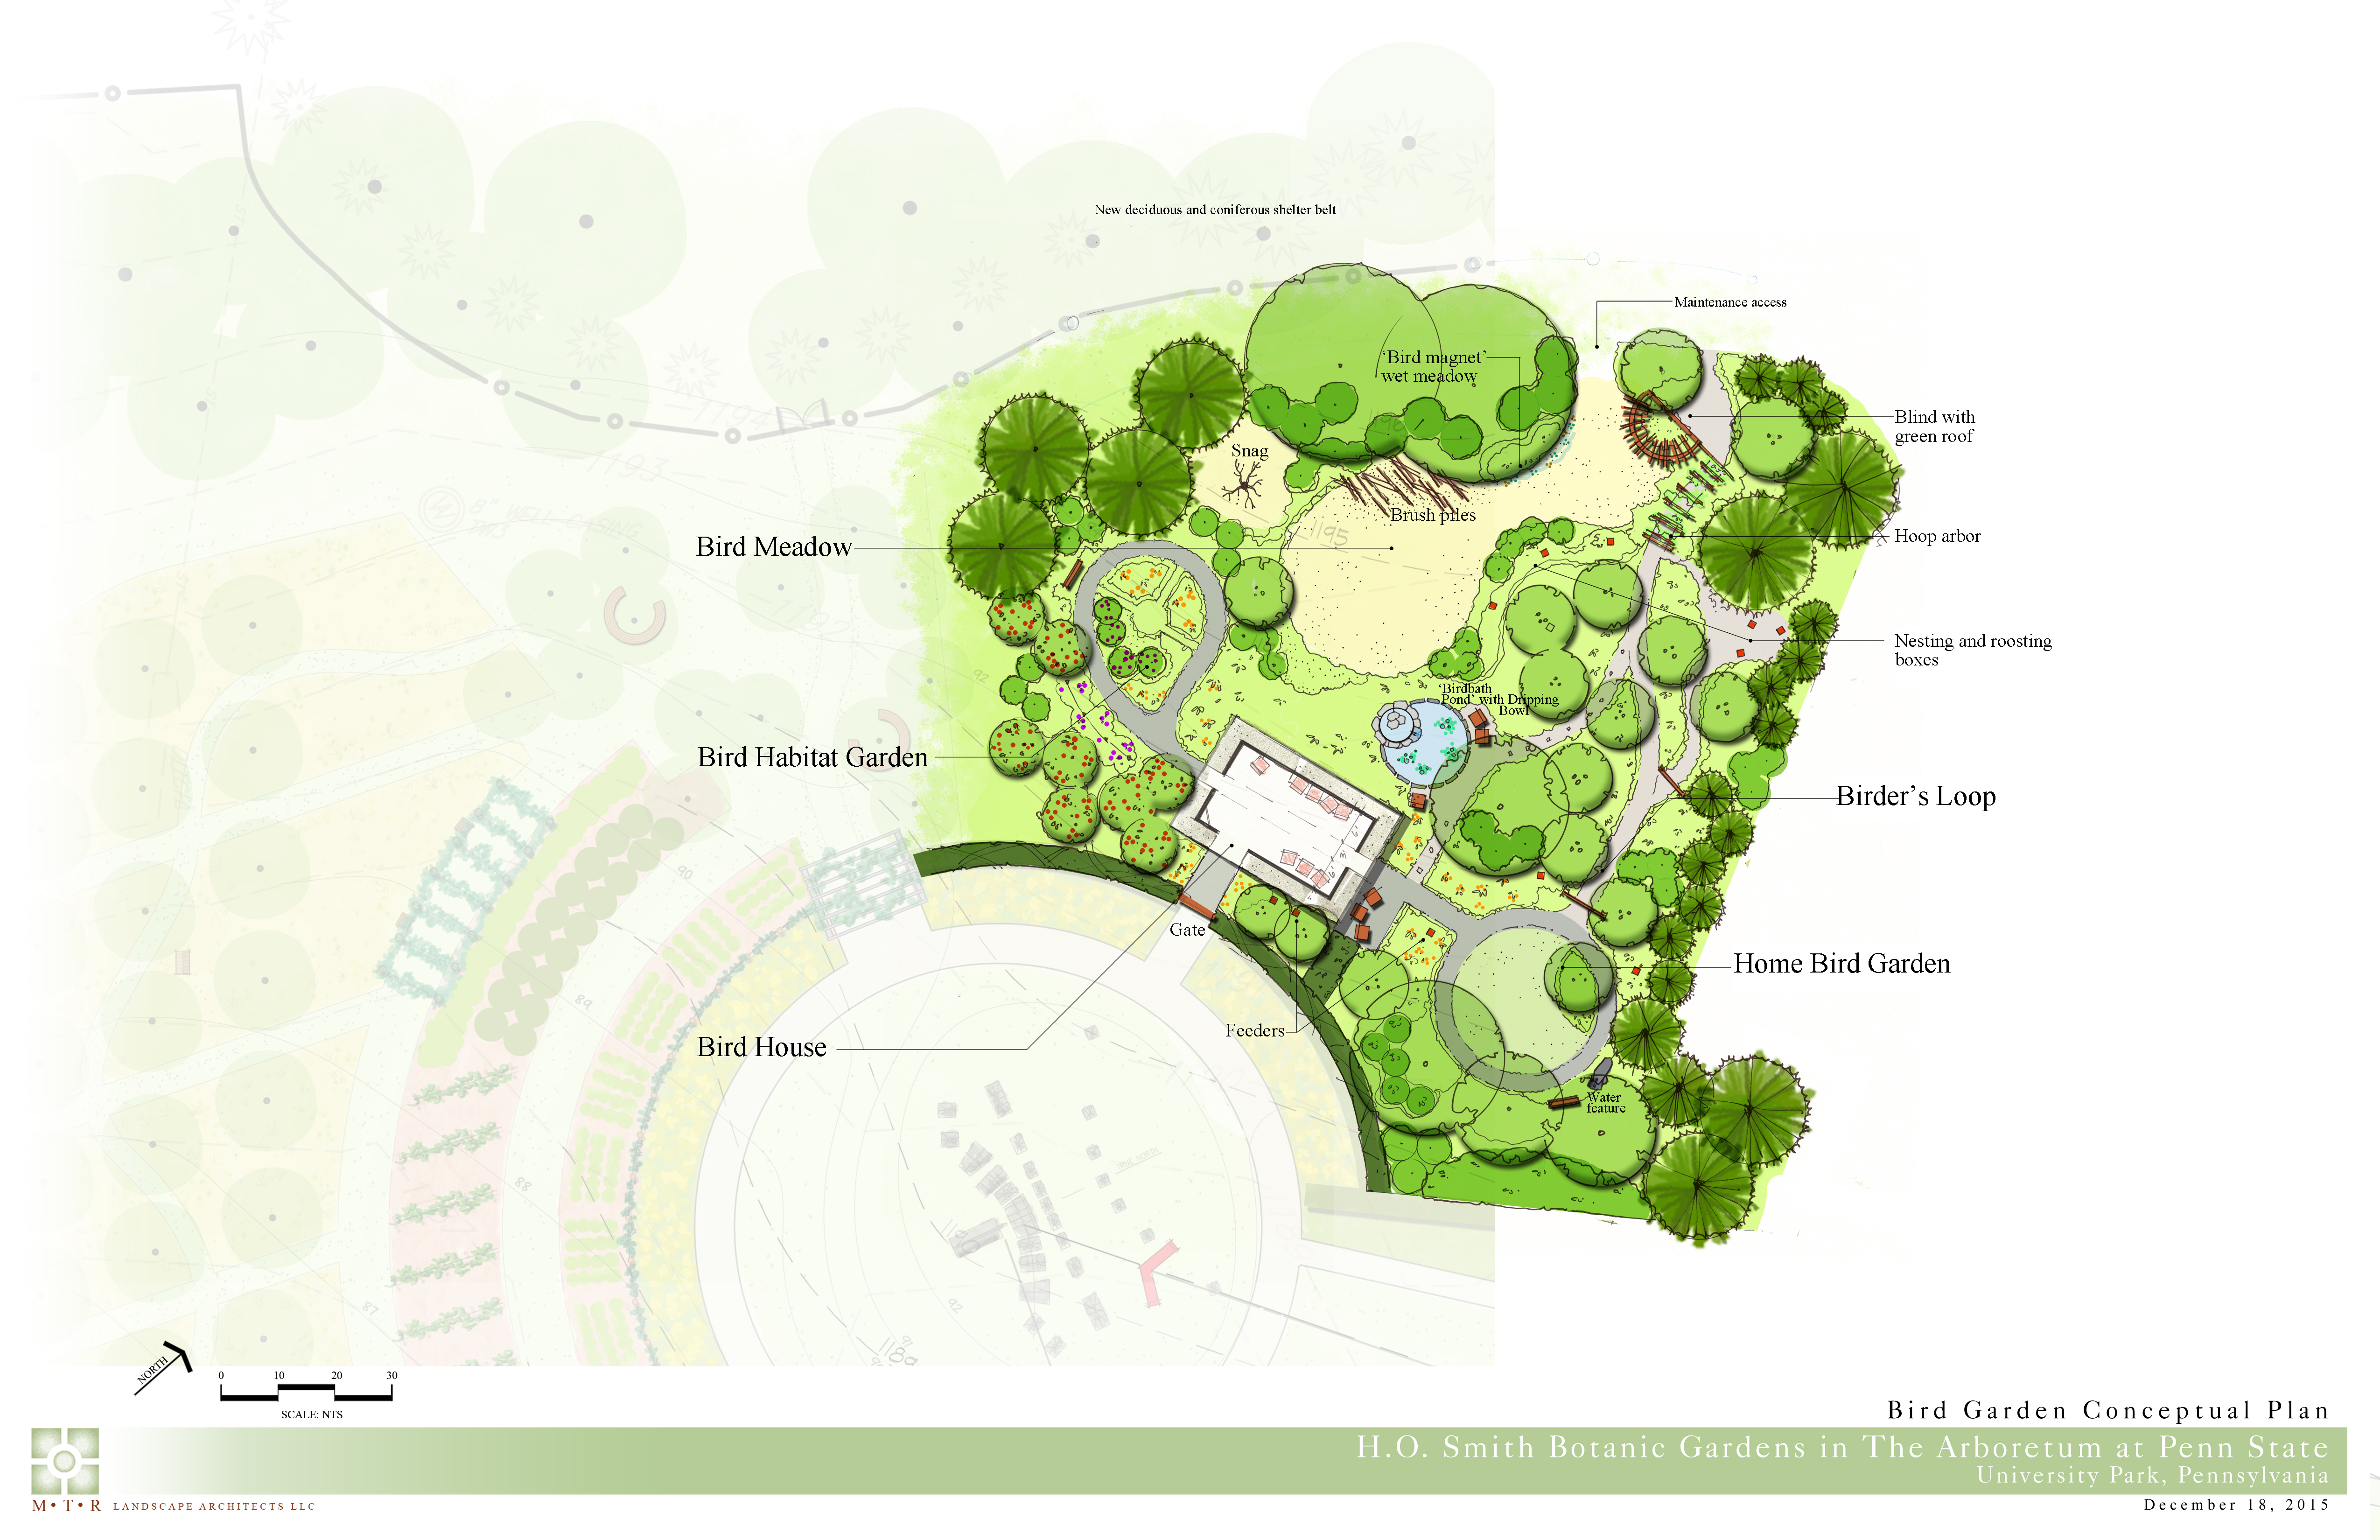 Future gardens arboretum at penn state for Planning your garden layout